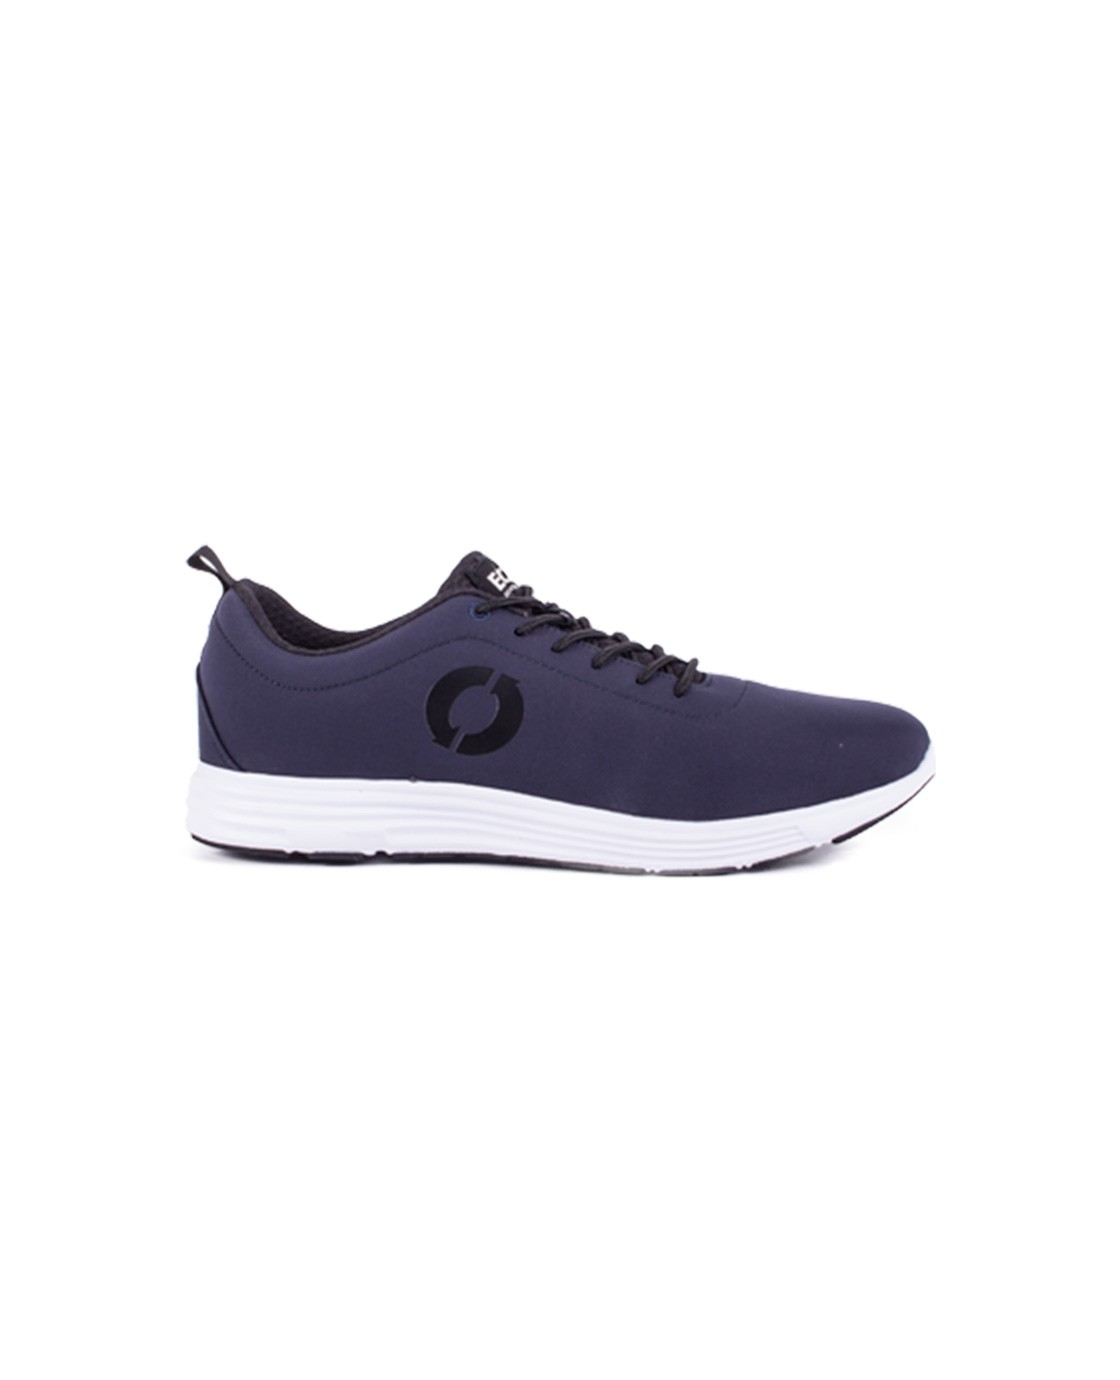 ZAPATILLAS STREET UNICO ECOALF OREGON OREGON MIDNIGHT NAVY